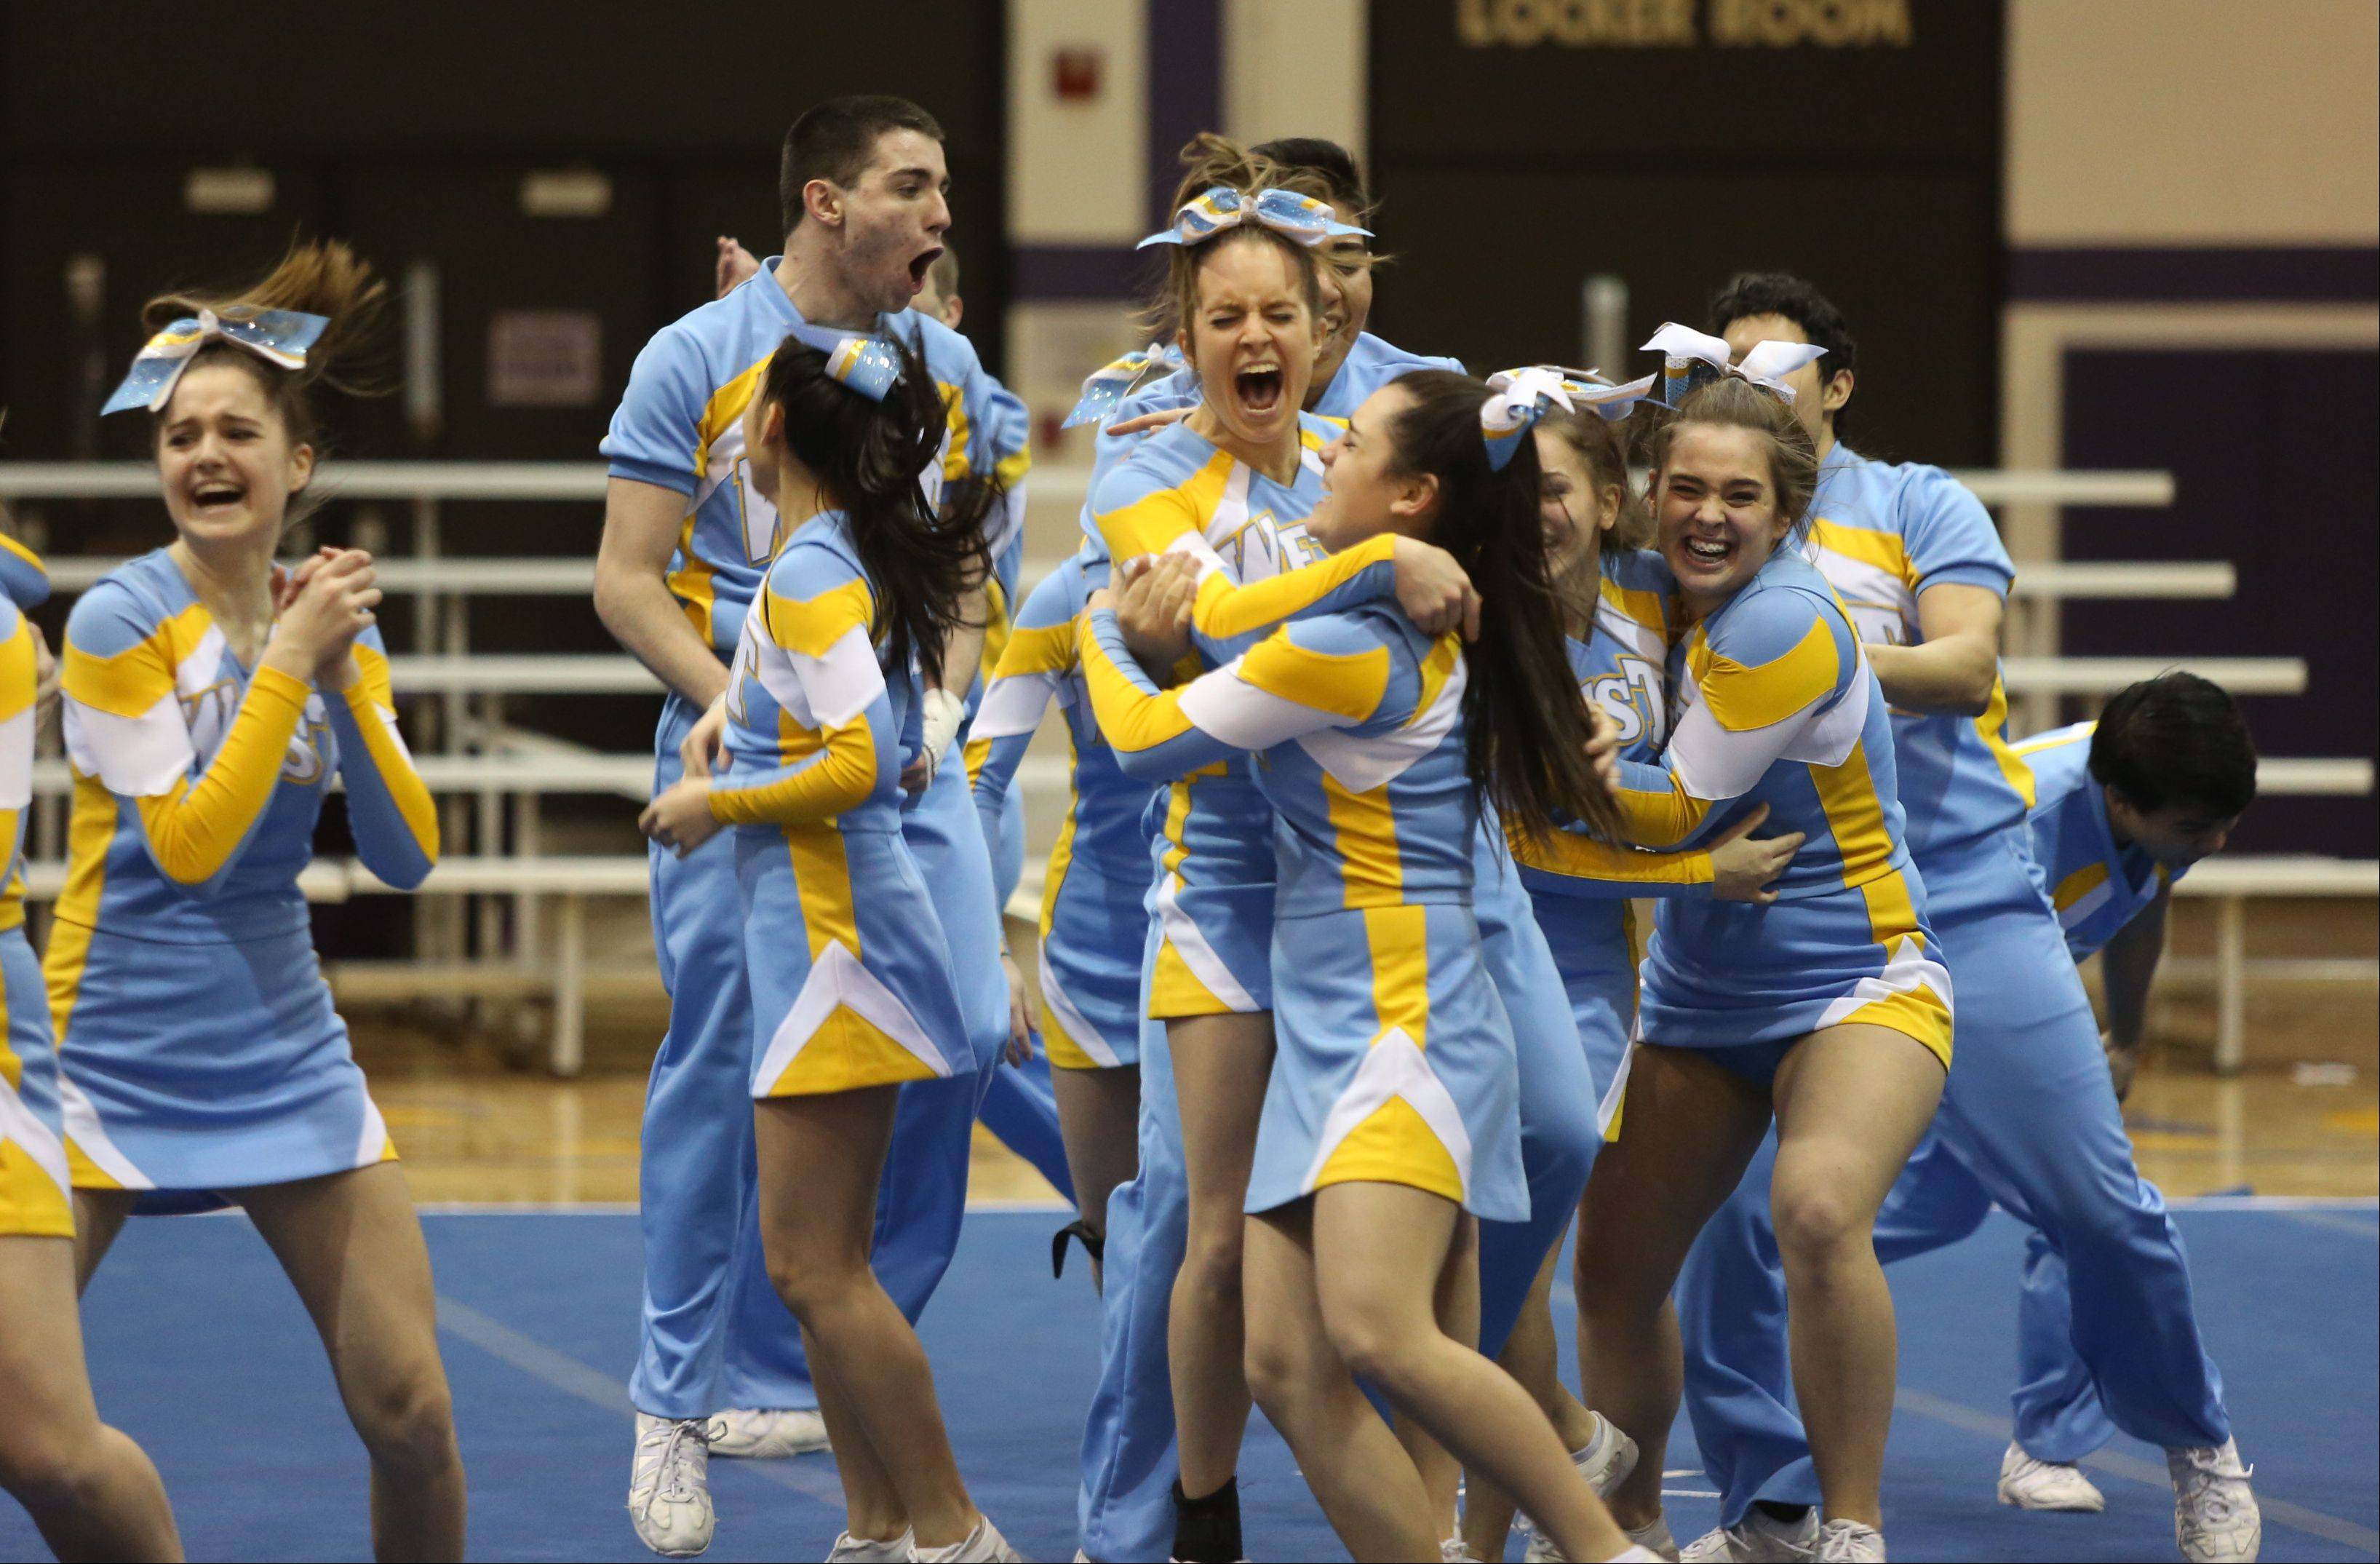 Maine West High School celebrate after competing in the Coed Team category during the IHSA Cheerleading Sectional Sunday hosted by Rolling Meadows High School.